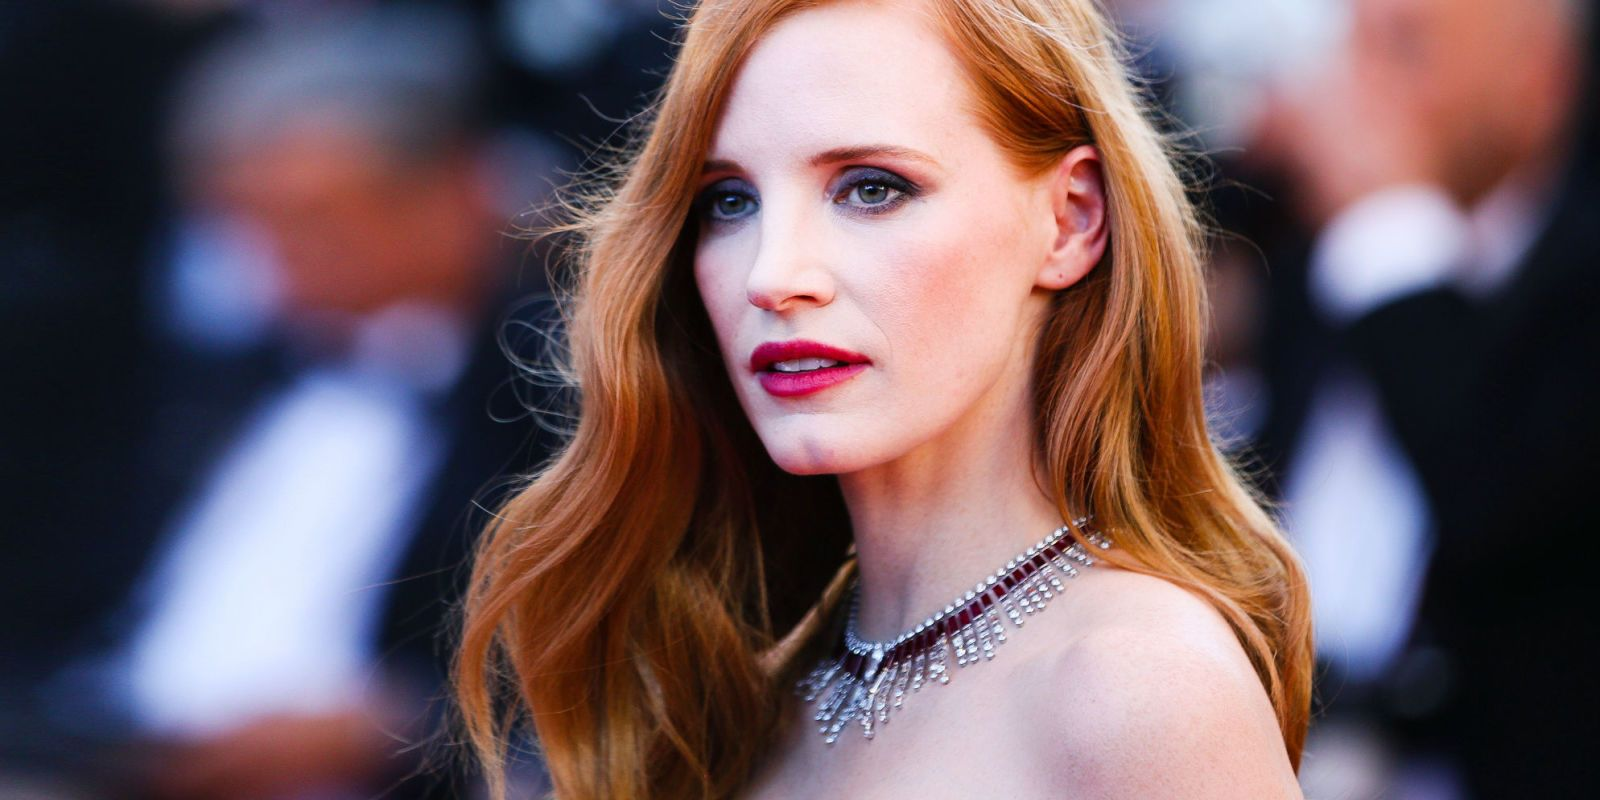 Jessica Ralph Fragrance Face Chastain Lauren The Of Is 'woman' pqMSVUzG